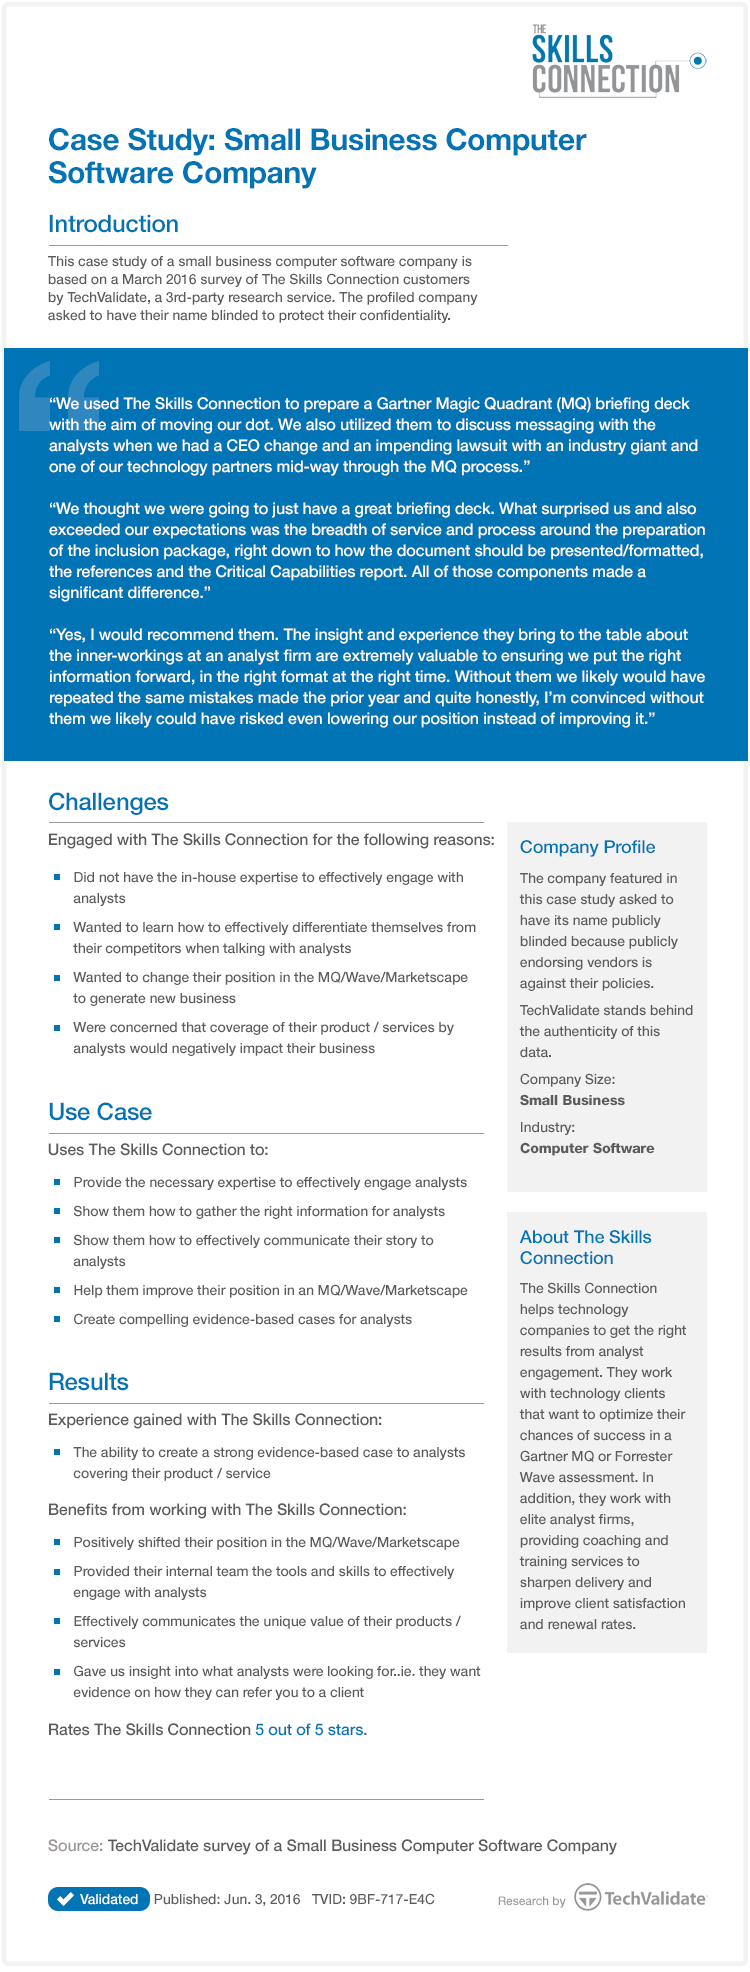 Case Study: Small Business Computer Software Company